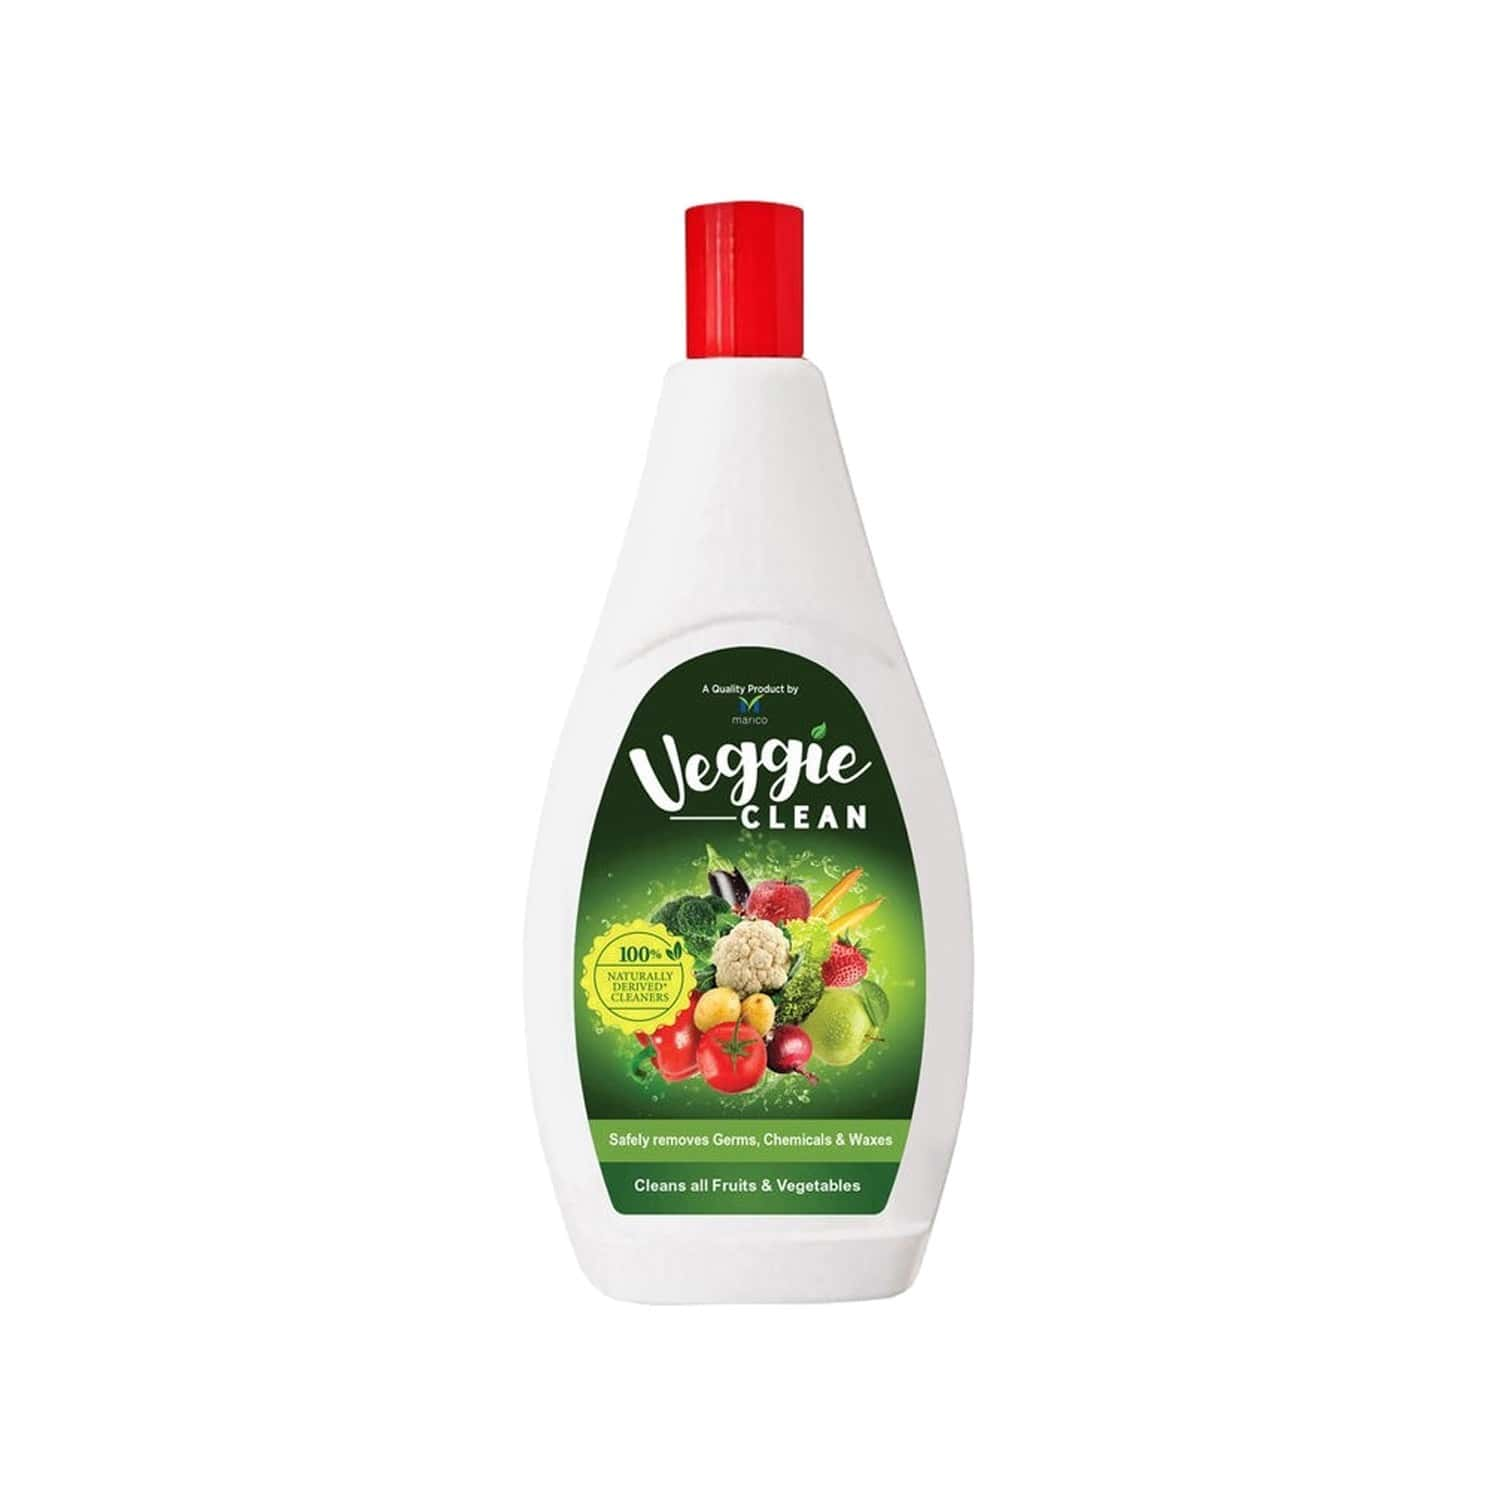 Fruits & Vegetables Washing Liquid, Removes Germs, Bacteria, Chemicals & Waxes, 200 Ml